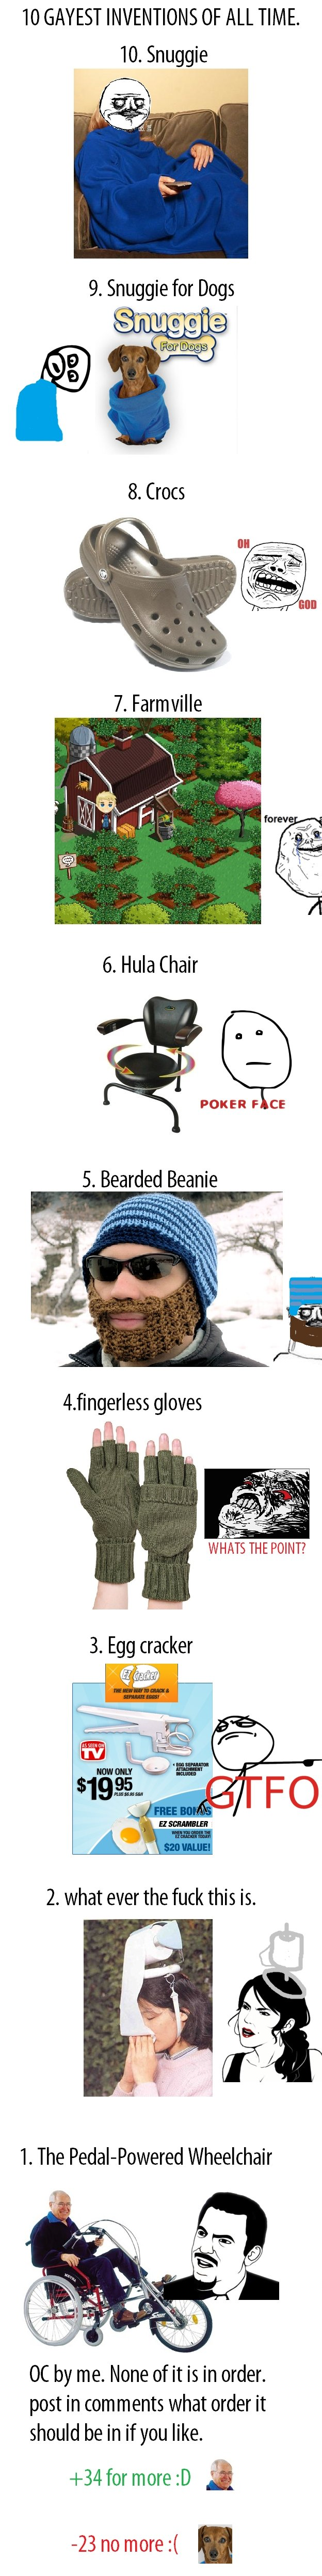 gayest inventions comp 1. OC a list of the worst inventions known to man.. 10 GAYEST INVENTIONS OF ALL TIME. 10. Snuggie 6. Hula Chair 5 g POKER FICE 5. Bearded